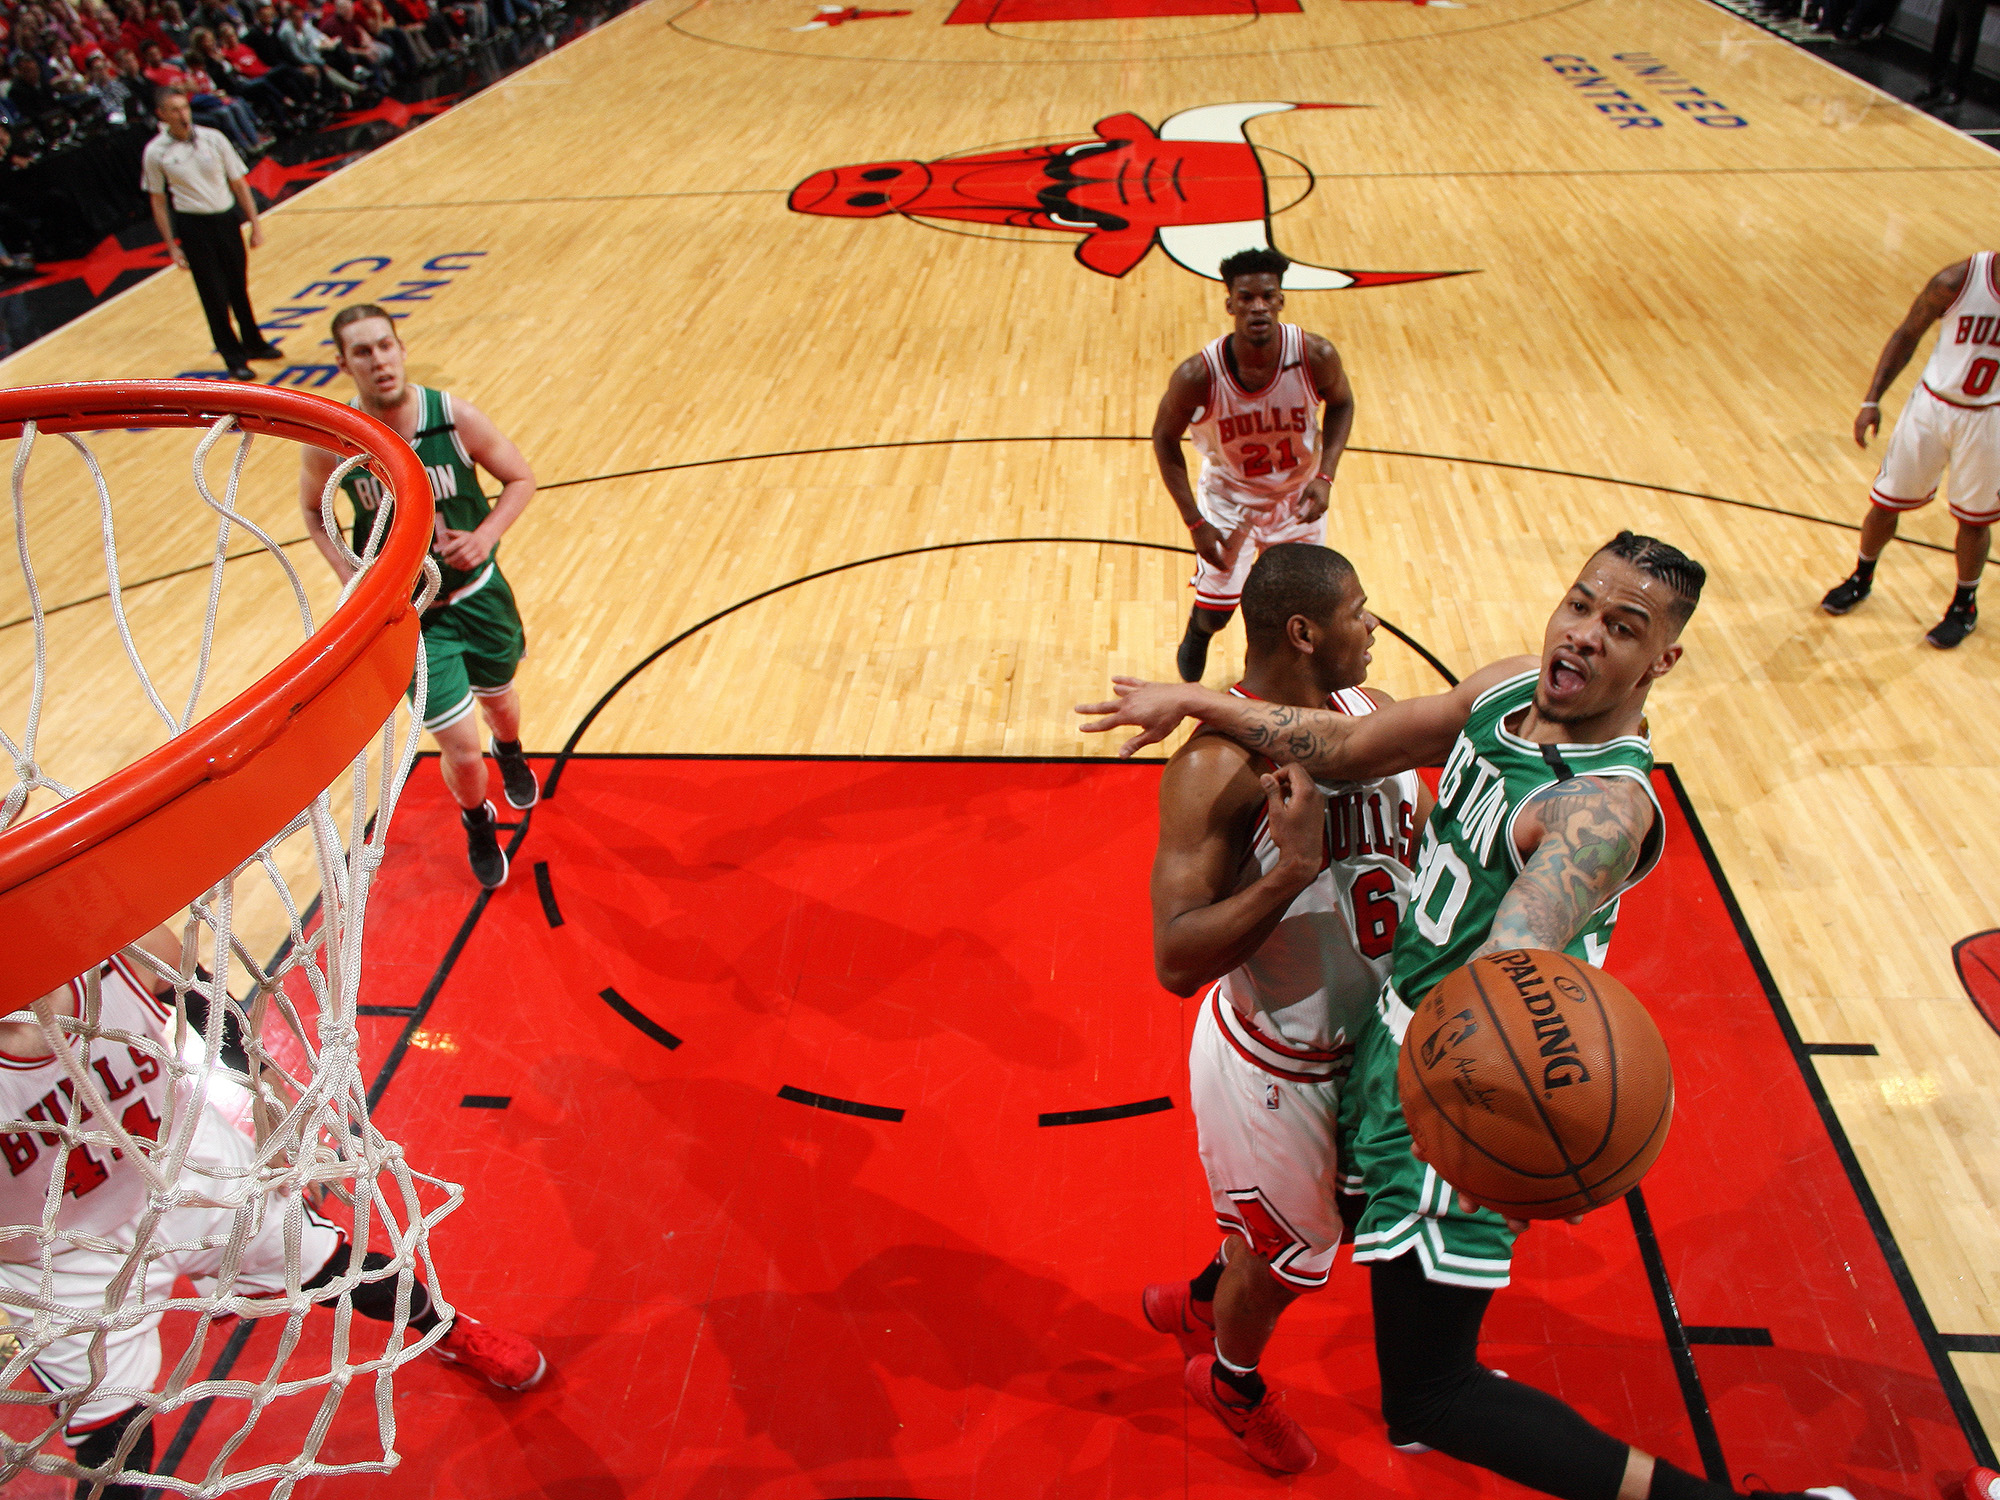 Celtics beat Bulls, take 3-2 lead in series